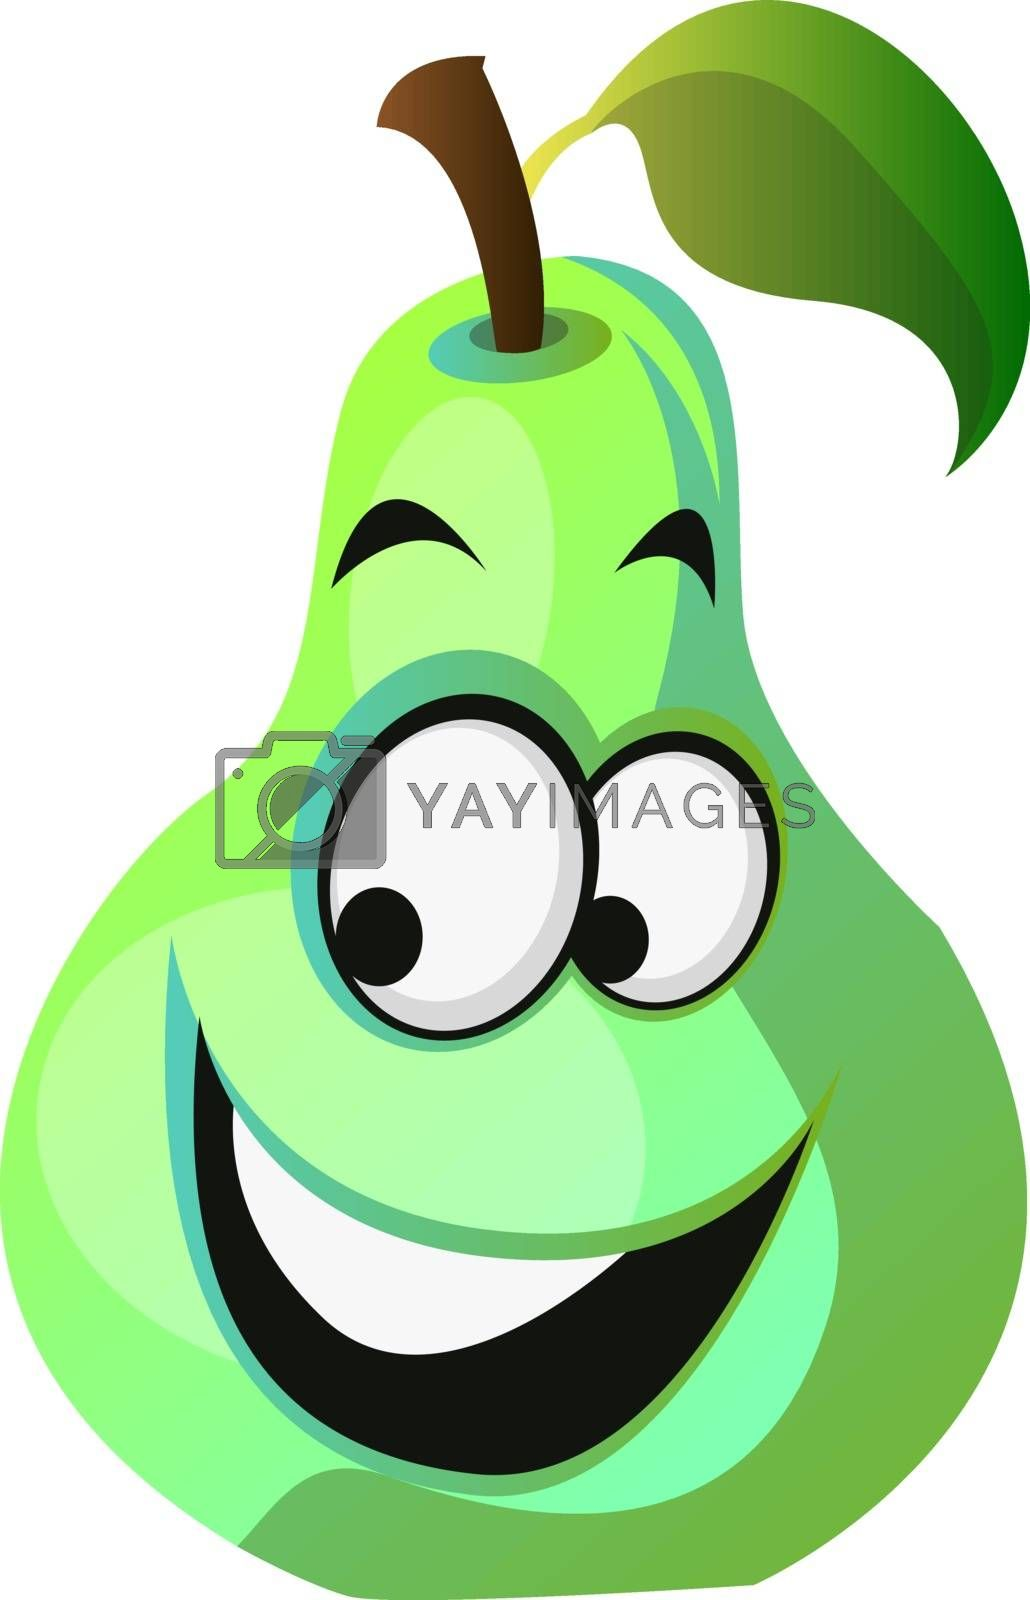 Royalty free image of Happy pear cartoon face illustration vector on white background by Morphart